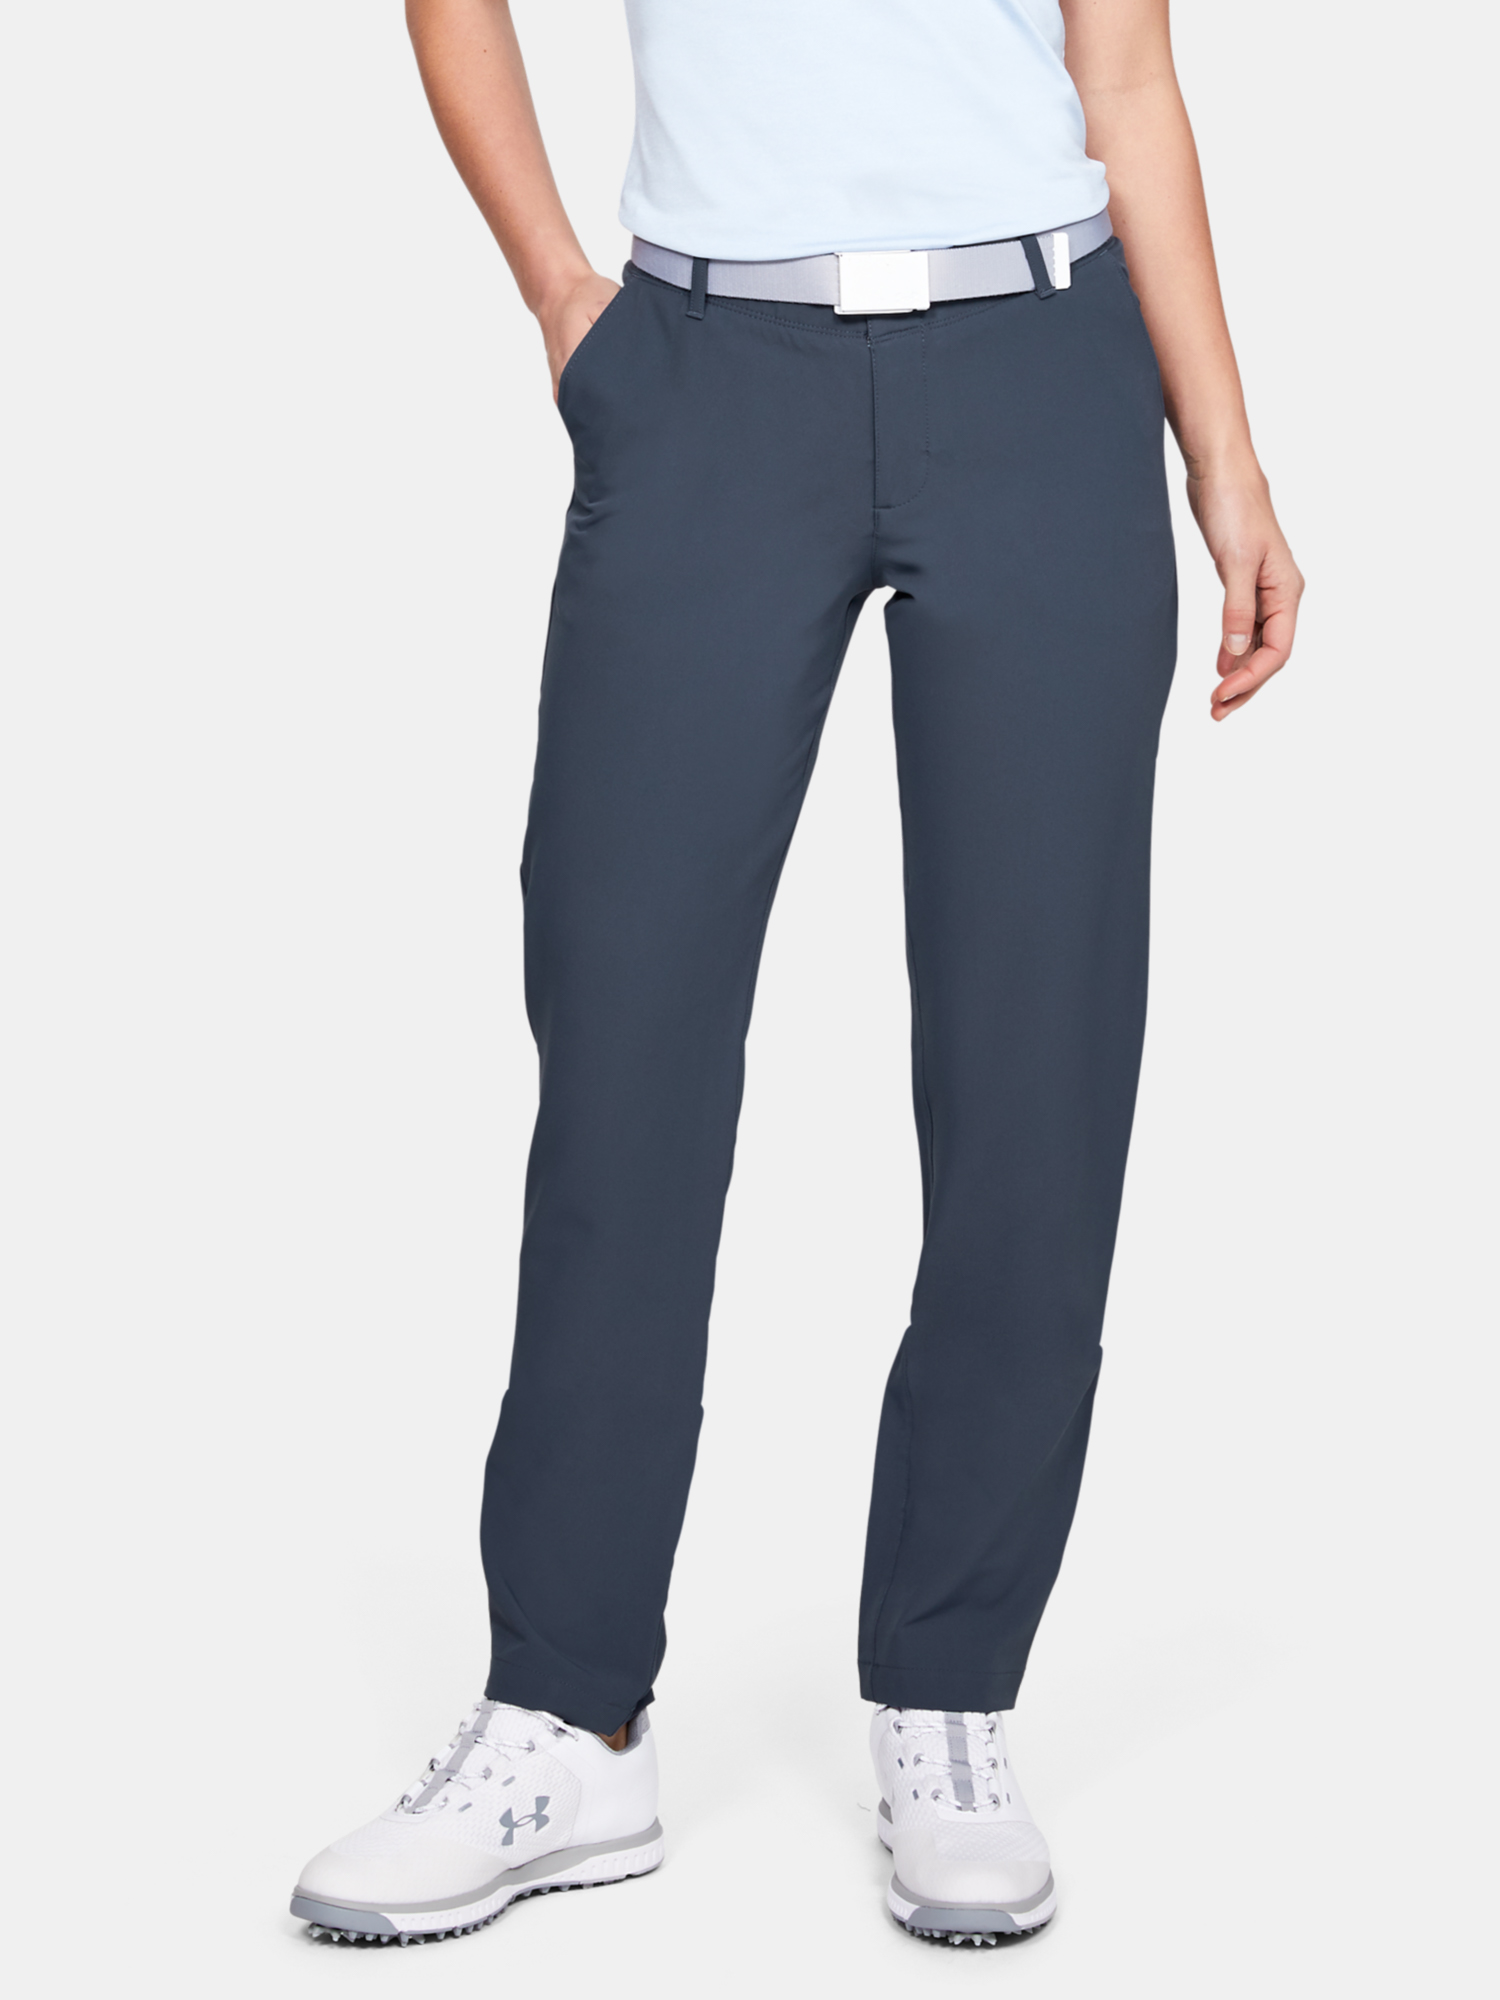 Kalhoty Under Armour Links Pant-GRY (1)